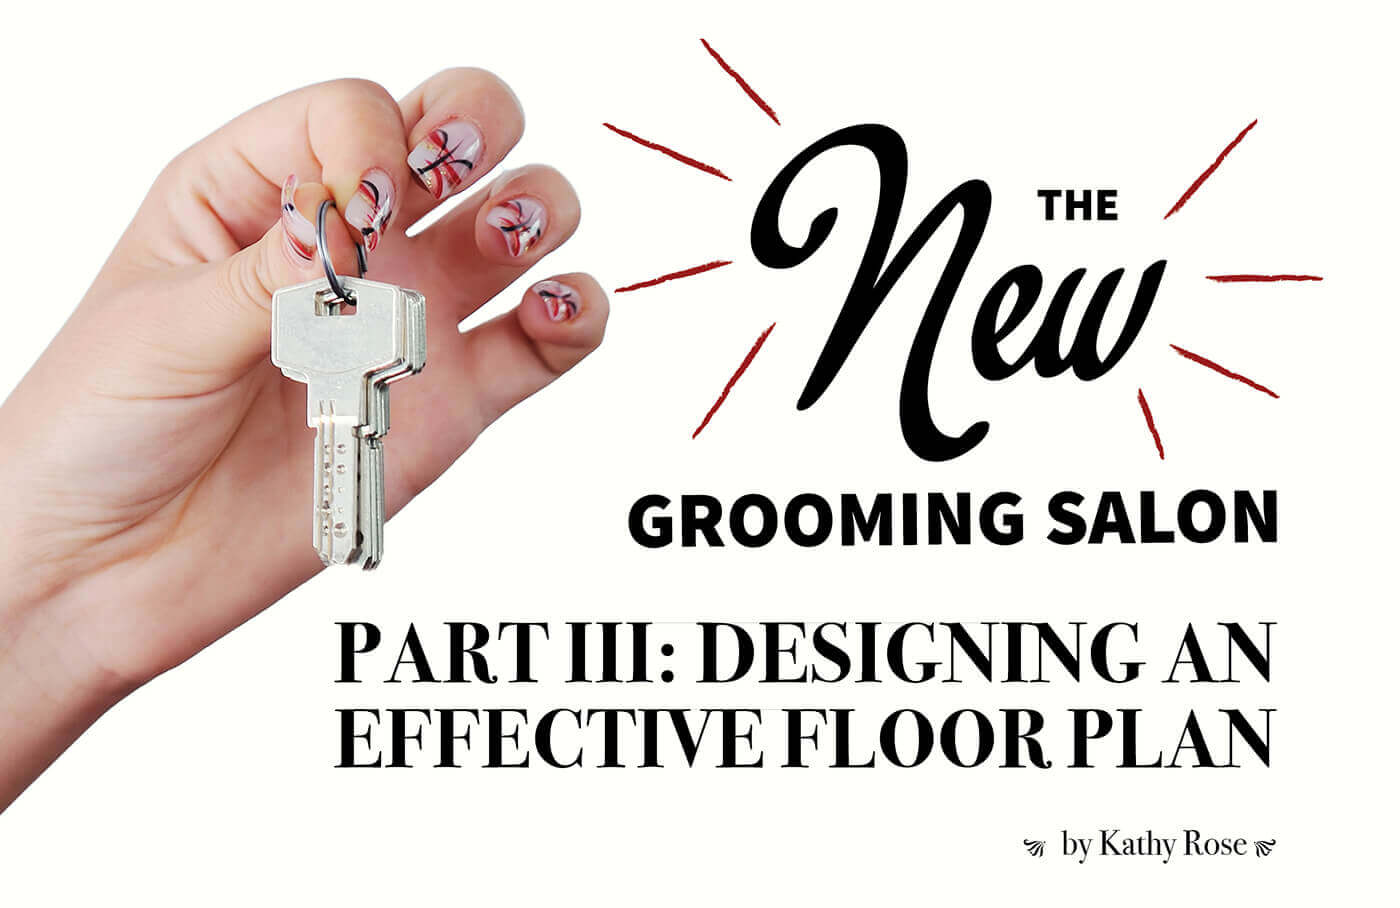 The New Grooming Salon Part III: Designing An Effective